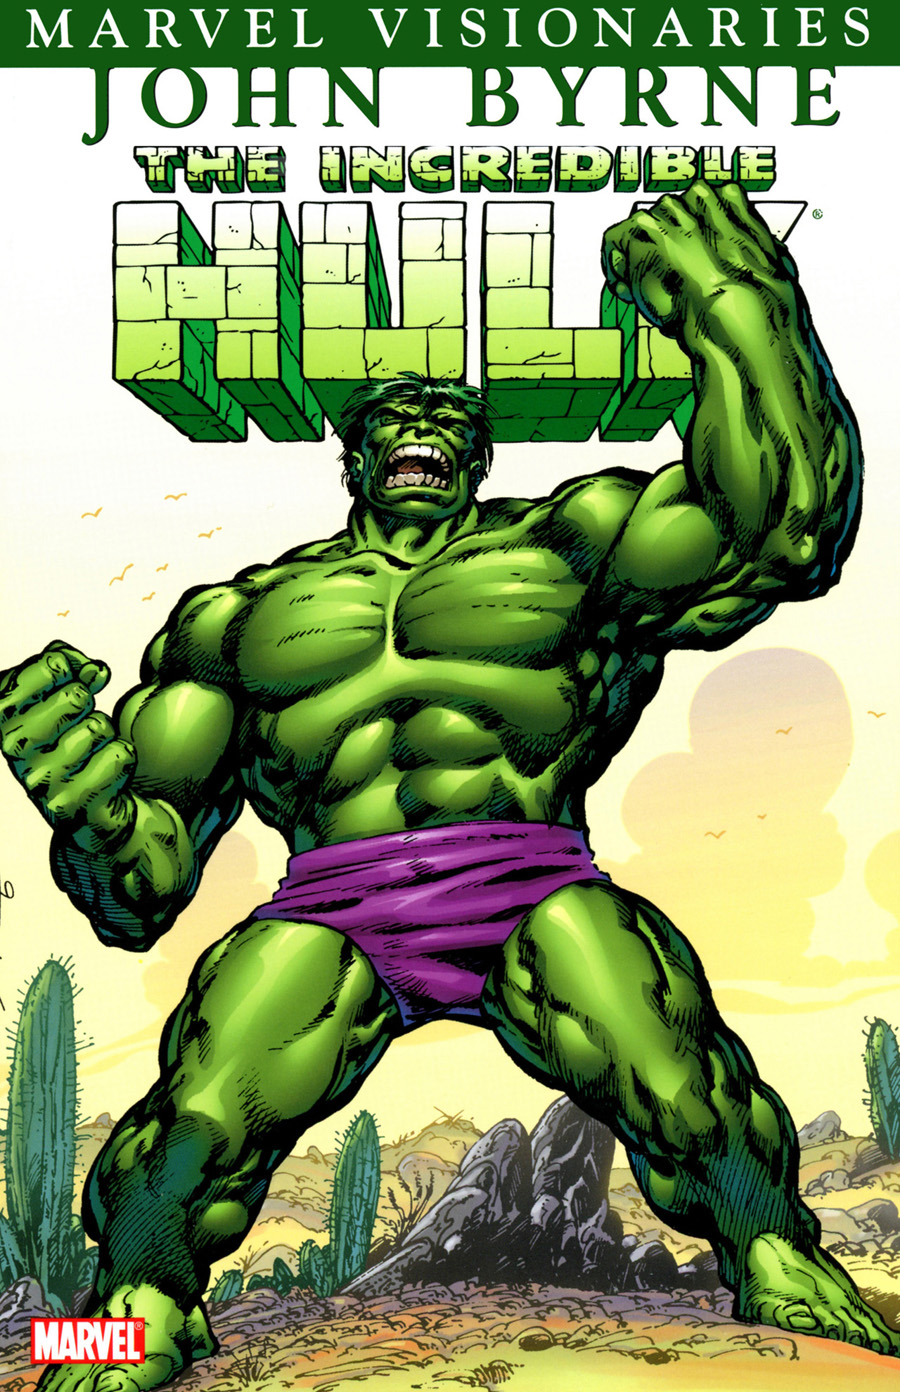 The All New, All Daring Delusional Honesty!: John Byrne & The Hulk